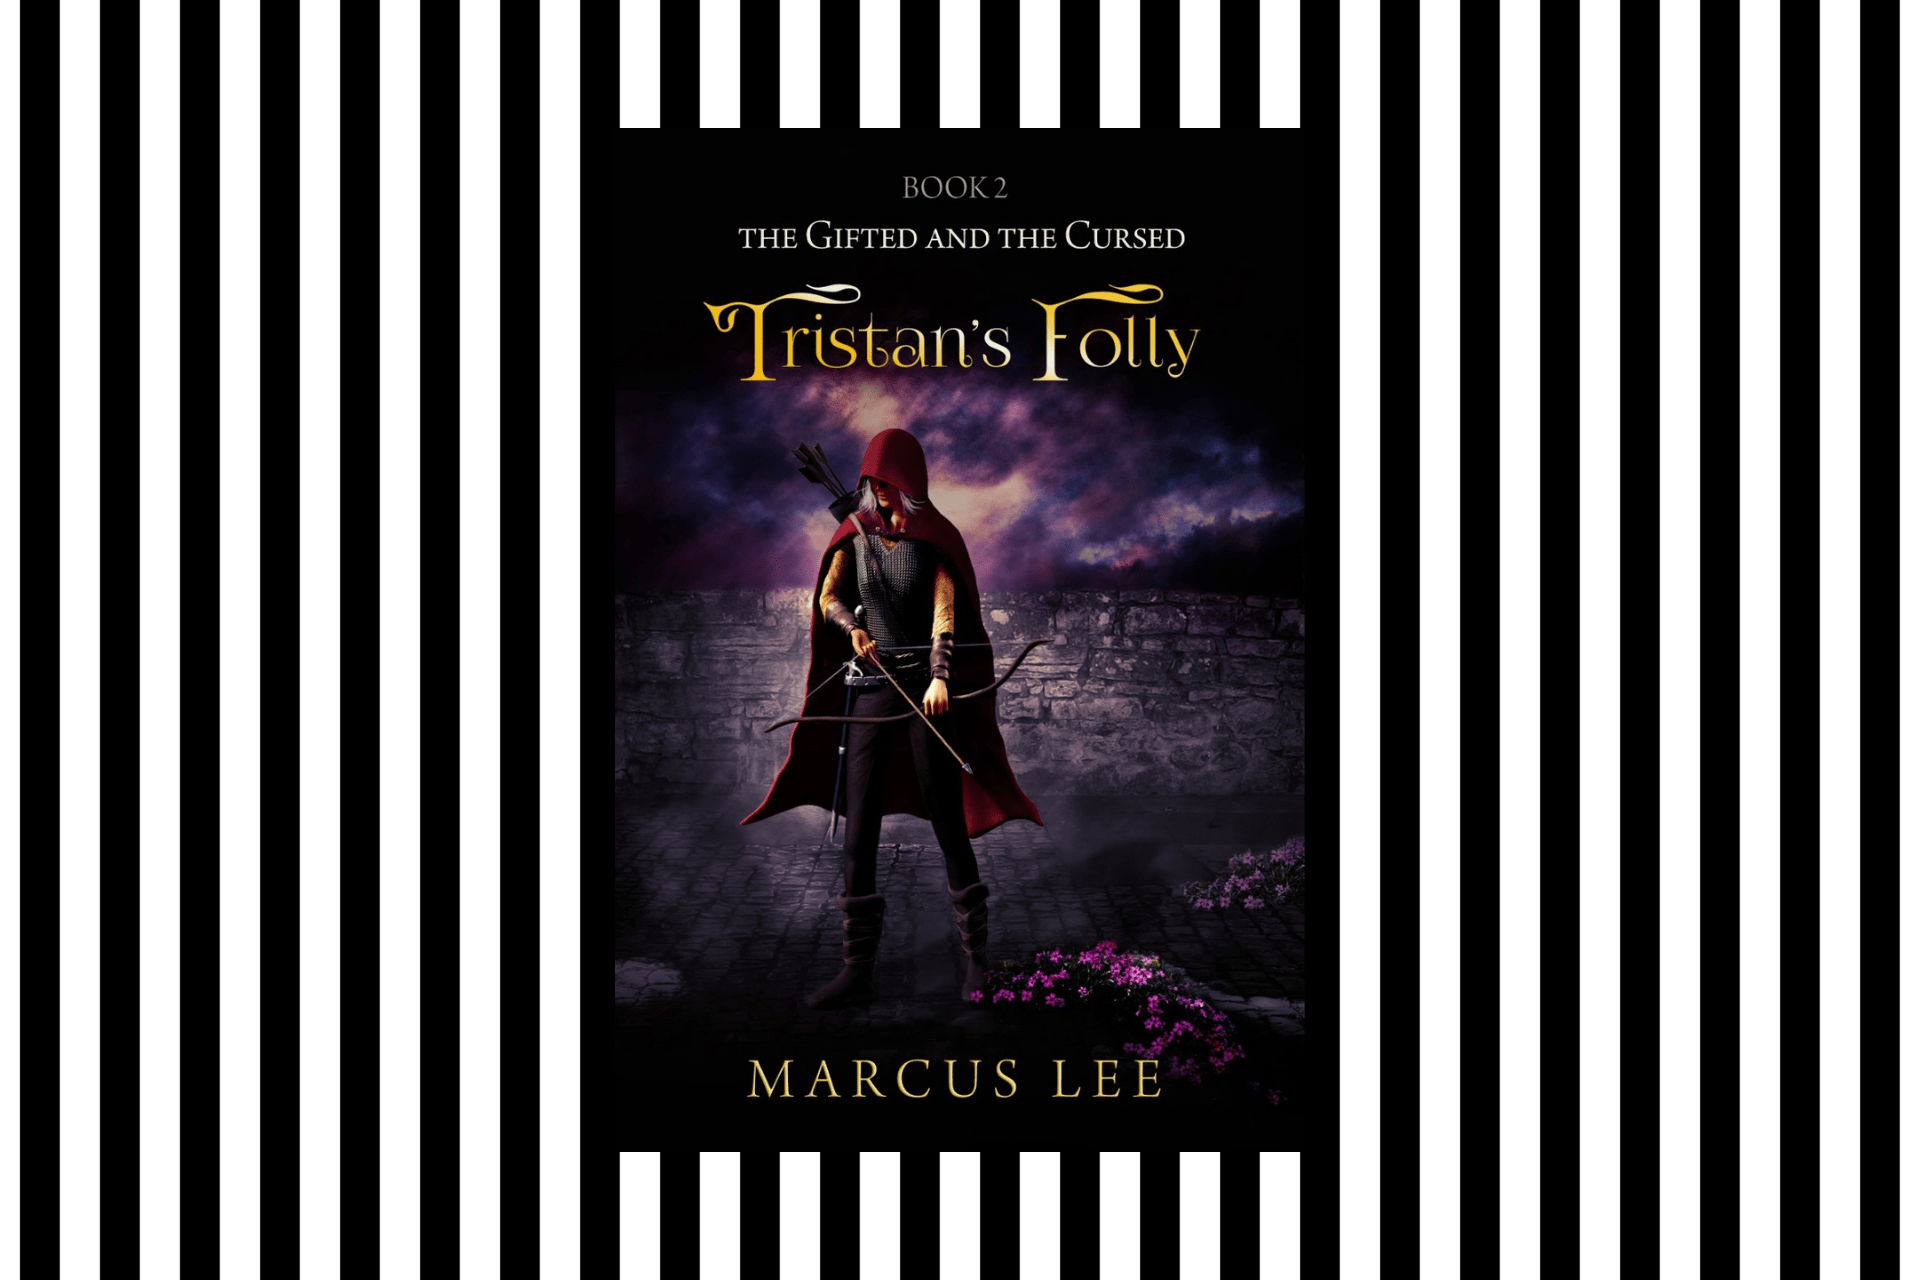 The cover of Tristan's Folly by Marcus Lee